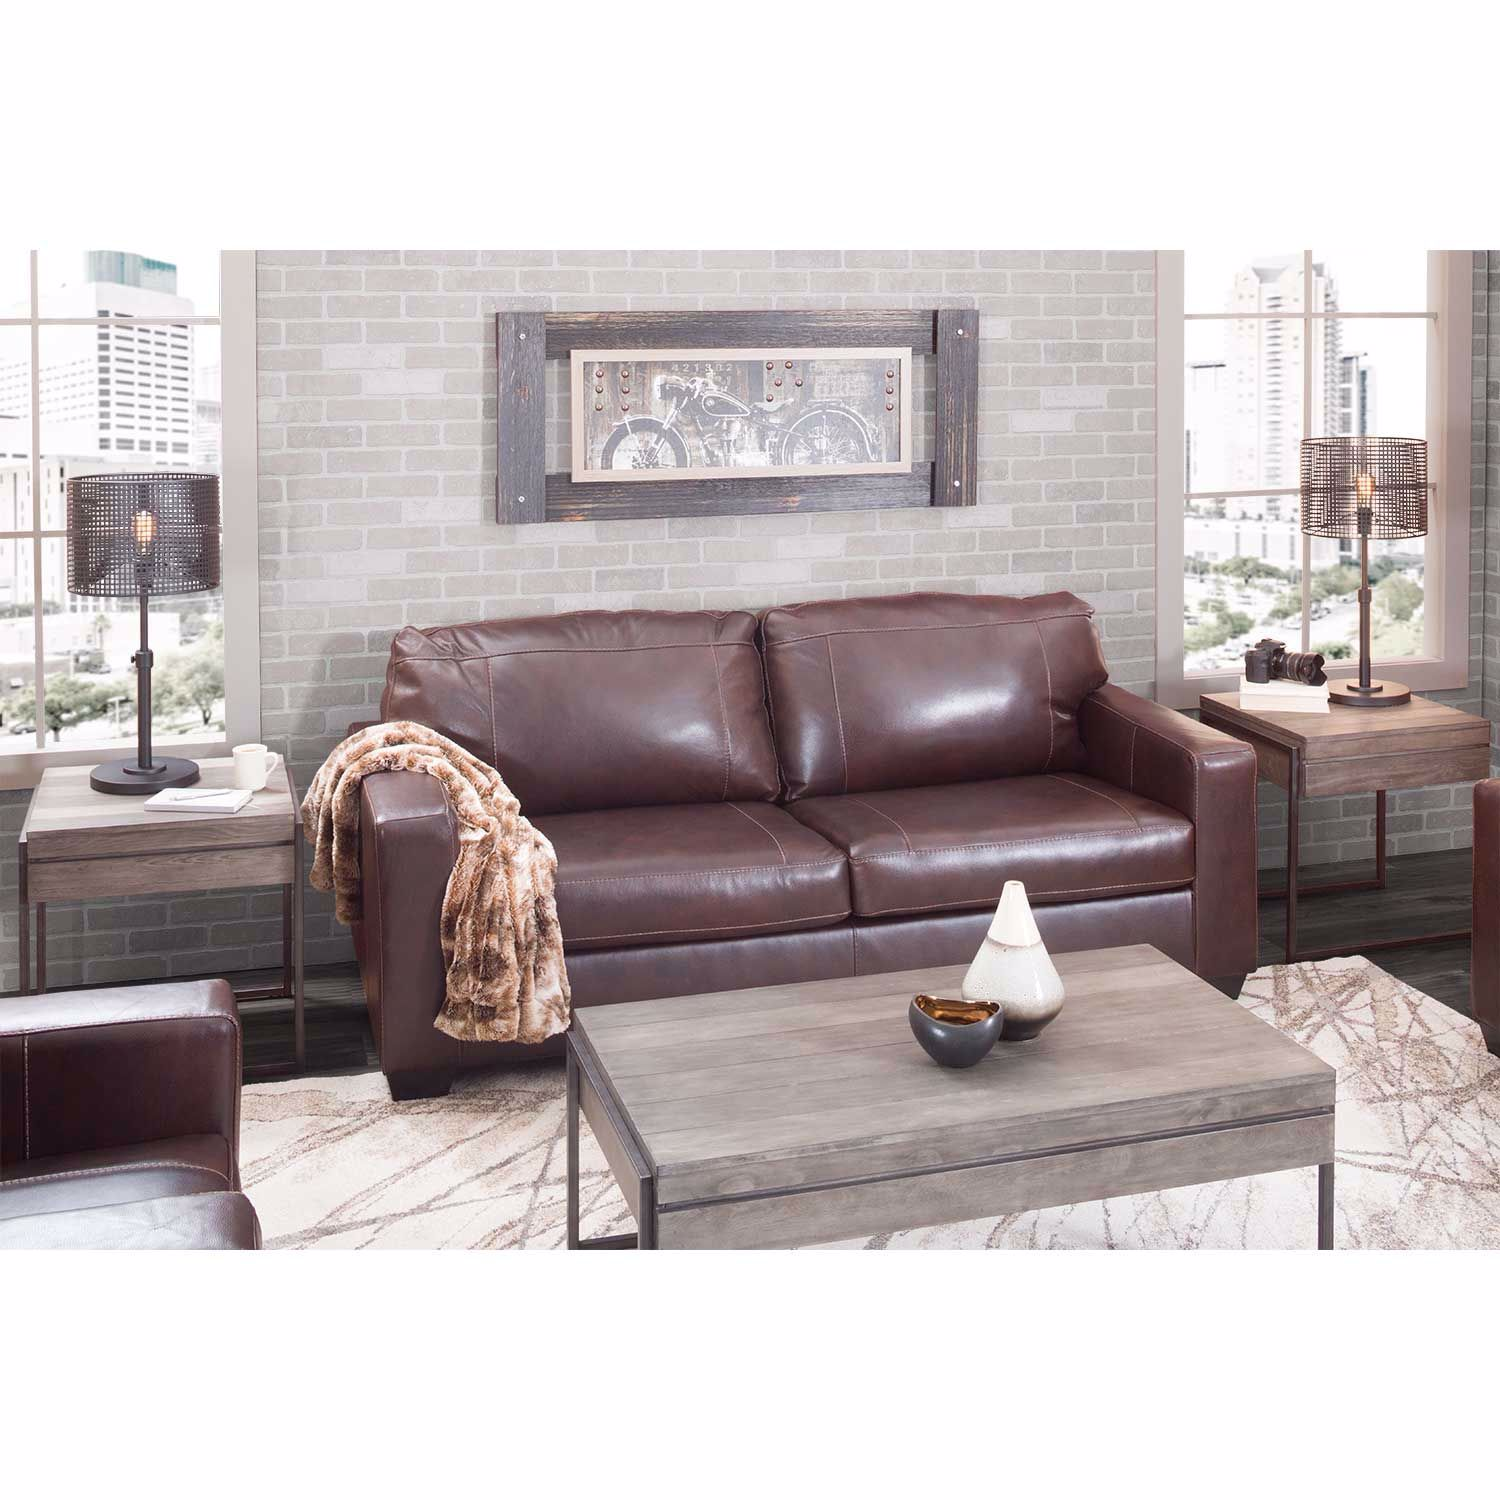 Picture of Morelos Brown Italian Leather Queen Sleeper Sofa